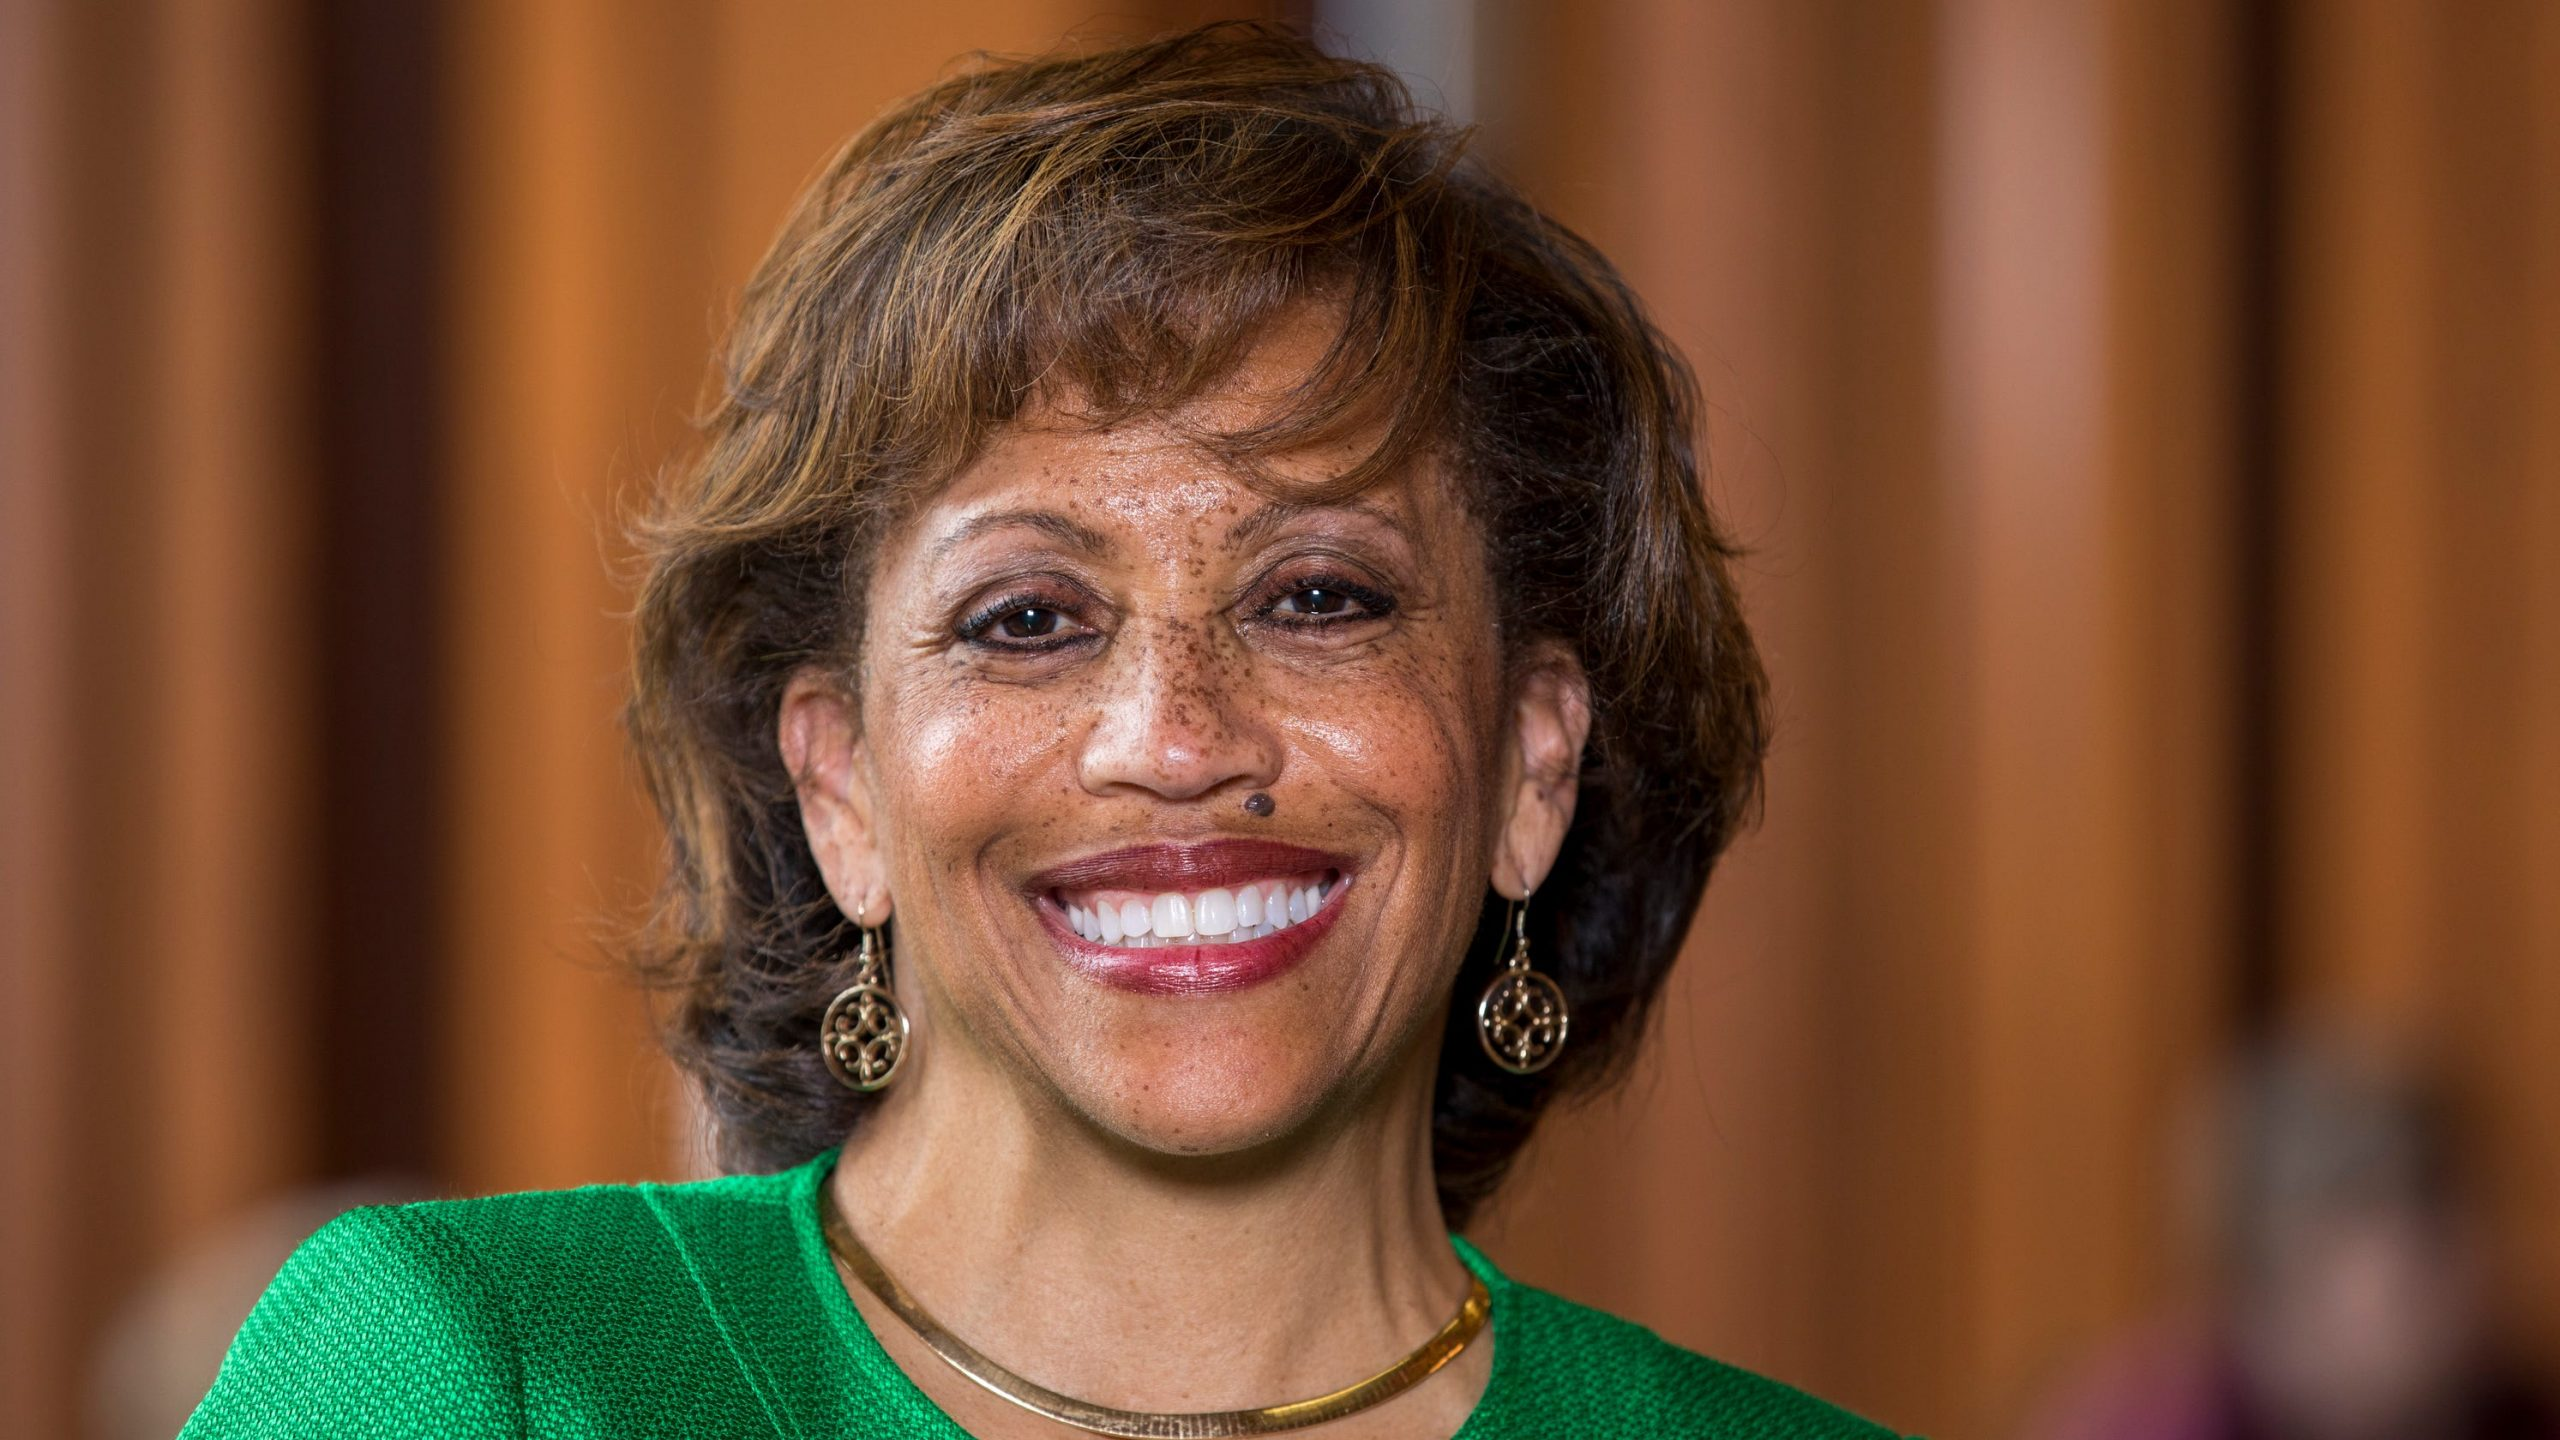 DePauw University appoints first African American president